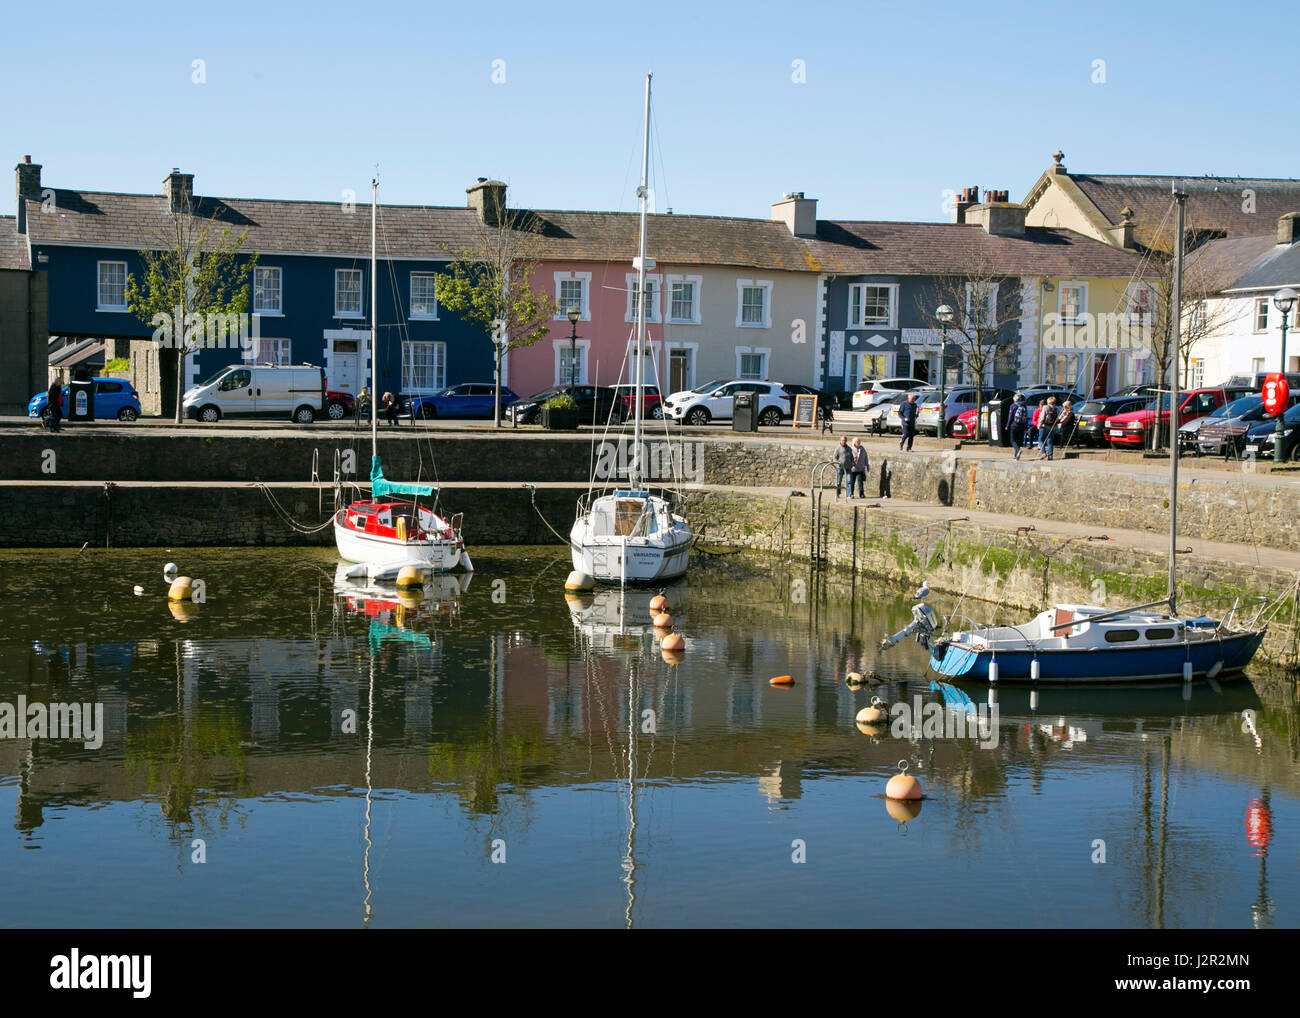 Aberaeron - a charming Georgian port town on the Cardigan Bay coast of West Wales, Sailing Boats and Fishing Boats Stock Photo